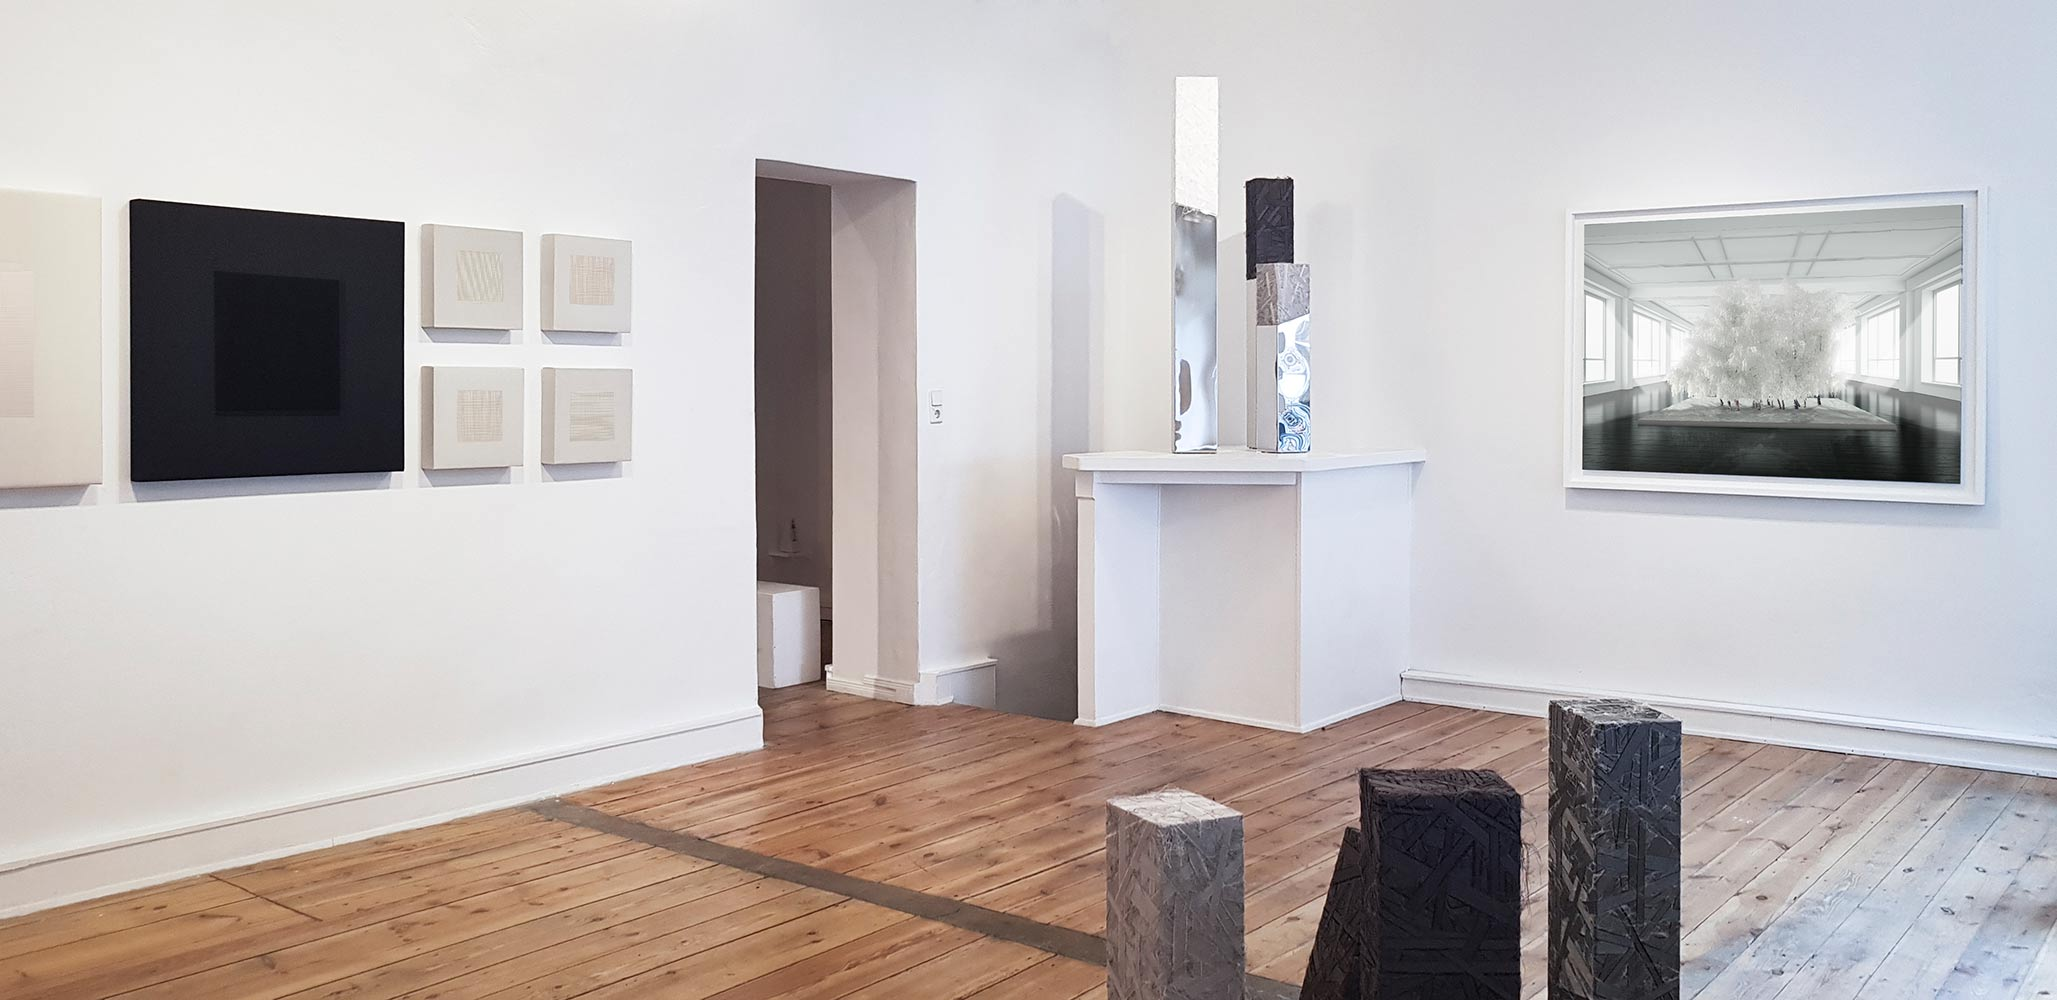 Luisa Catucci Gallery